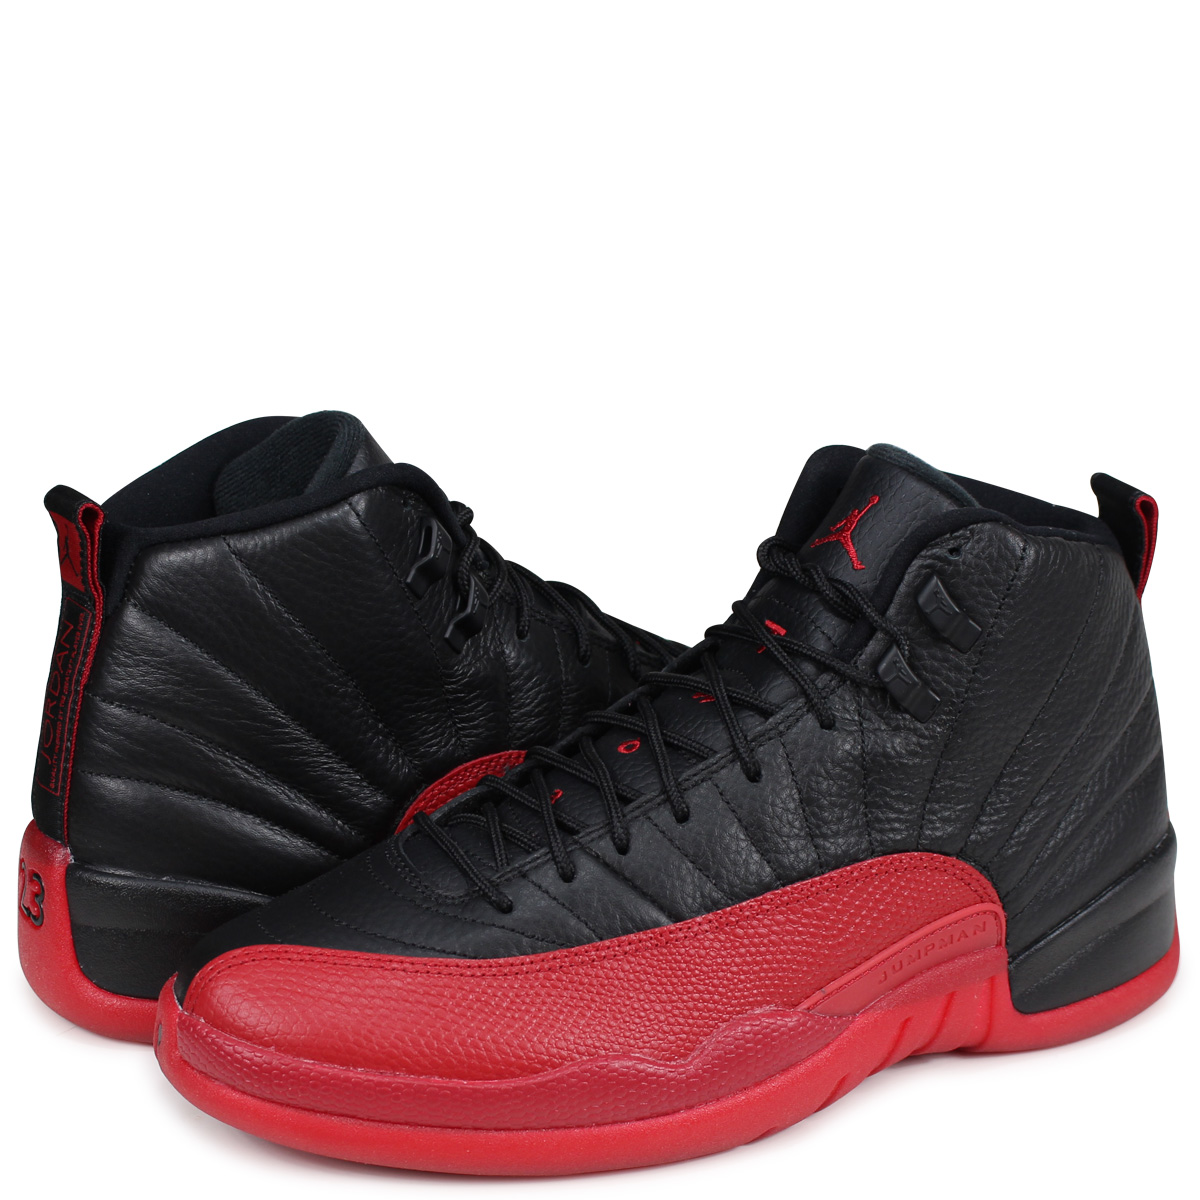 032b6a17284811 NIKE AIR JORDAN 12 RETRO FLU GAME Nike Air Jordan 12 nostalgic sneakers  men s full game 130